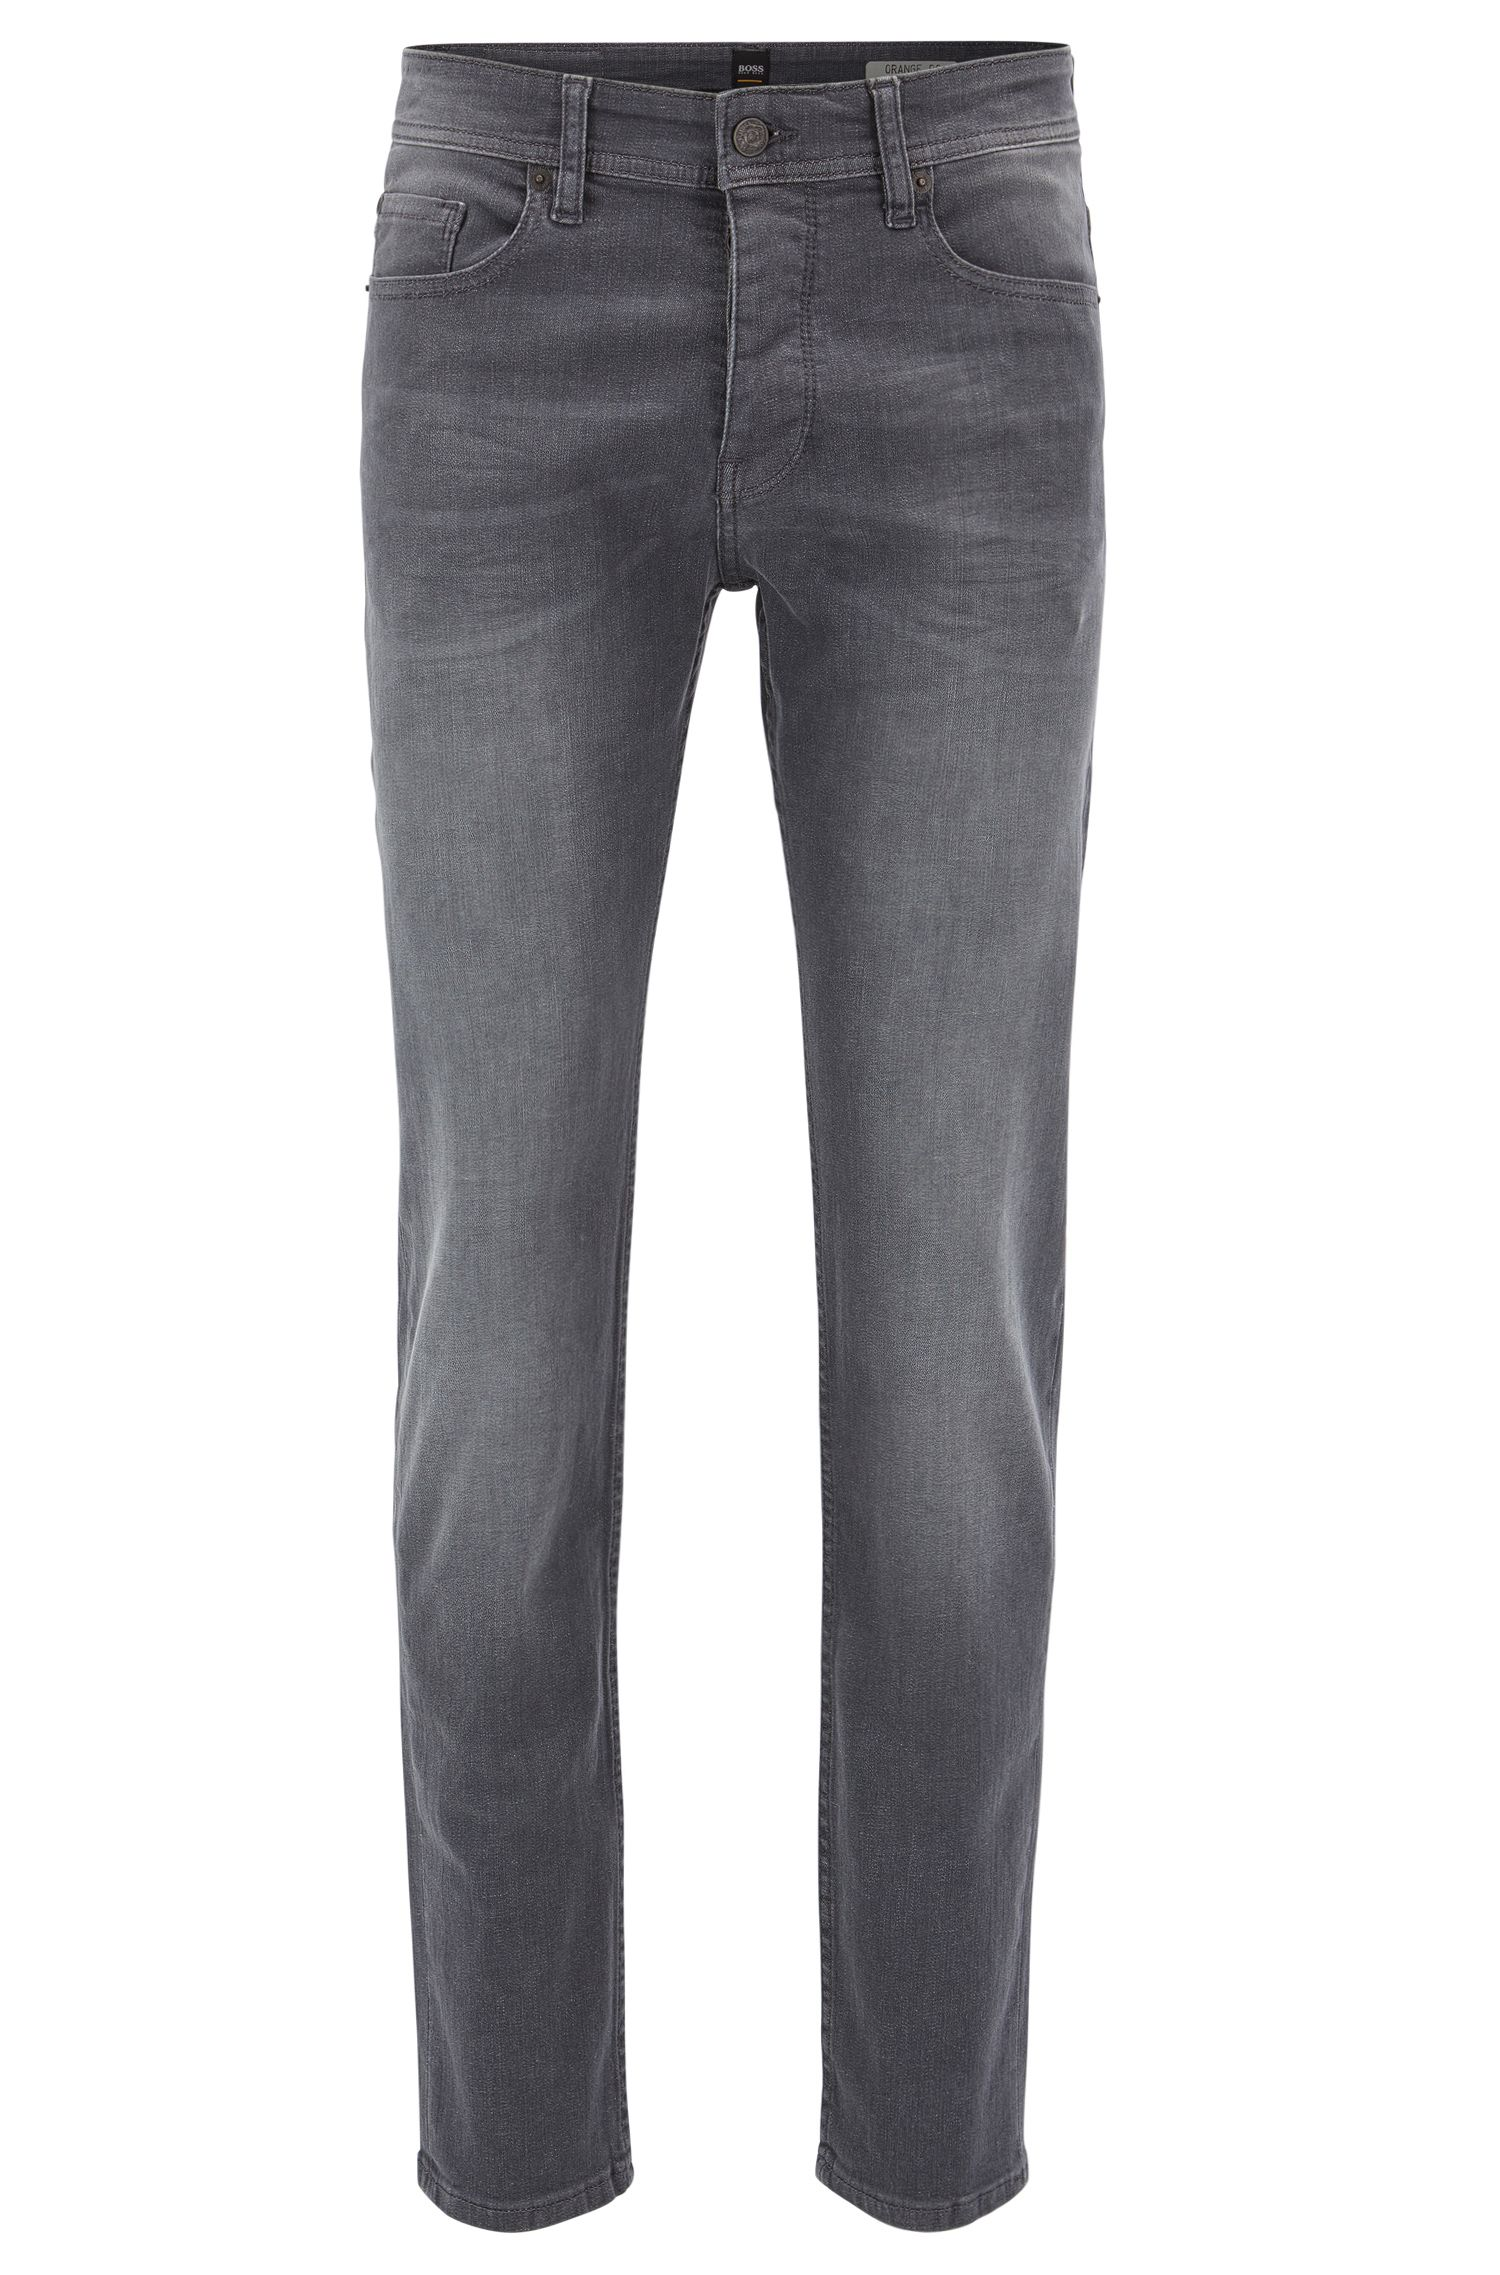 Tapered-fit jeans in stay-grey super-stretch denim